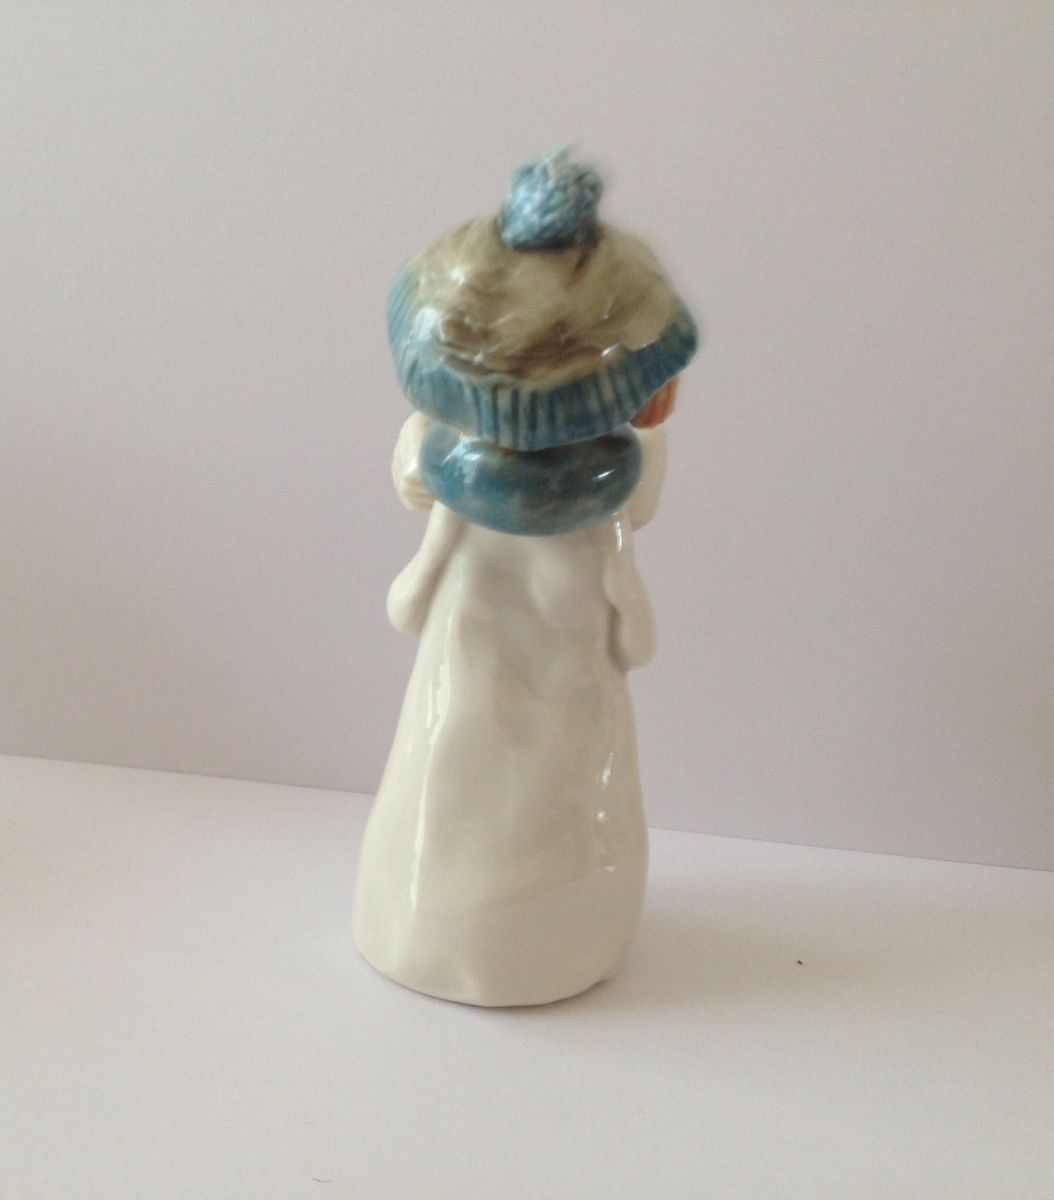 Carol Singer Girl Tall Blue Hat and Scarf approx 4.5 inches tall - product images  of